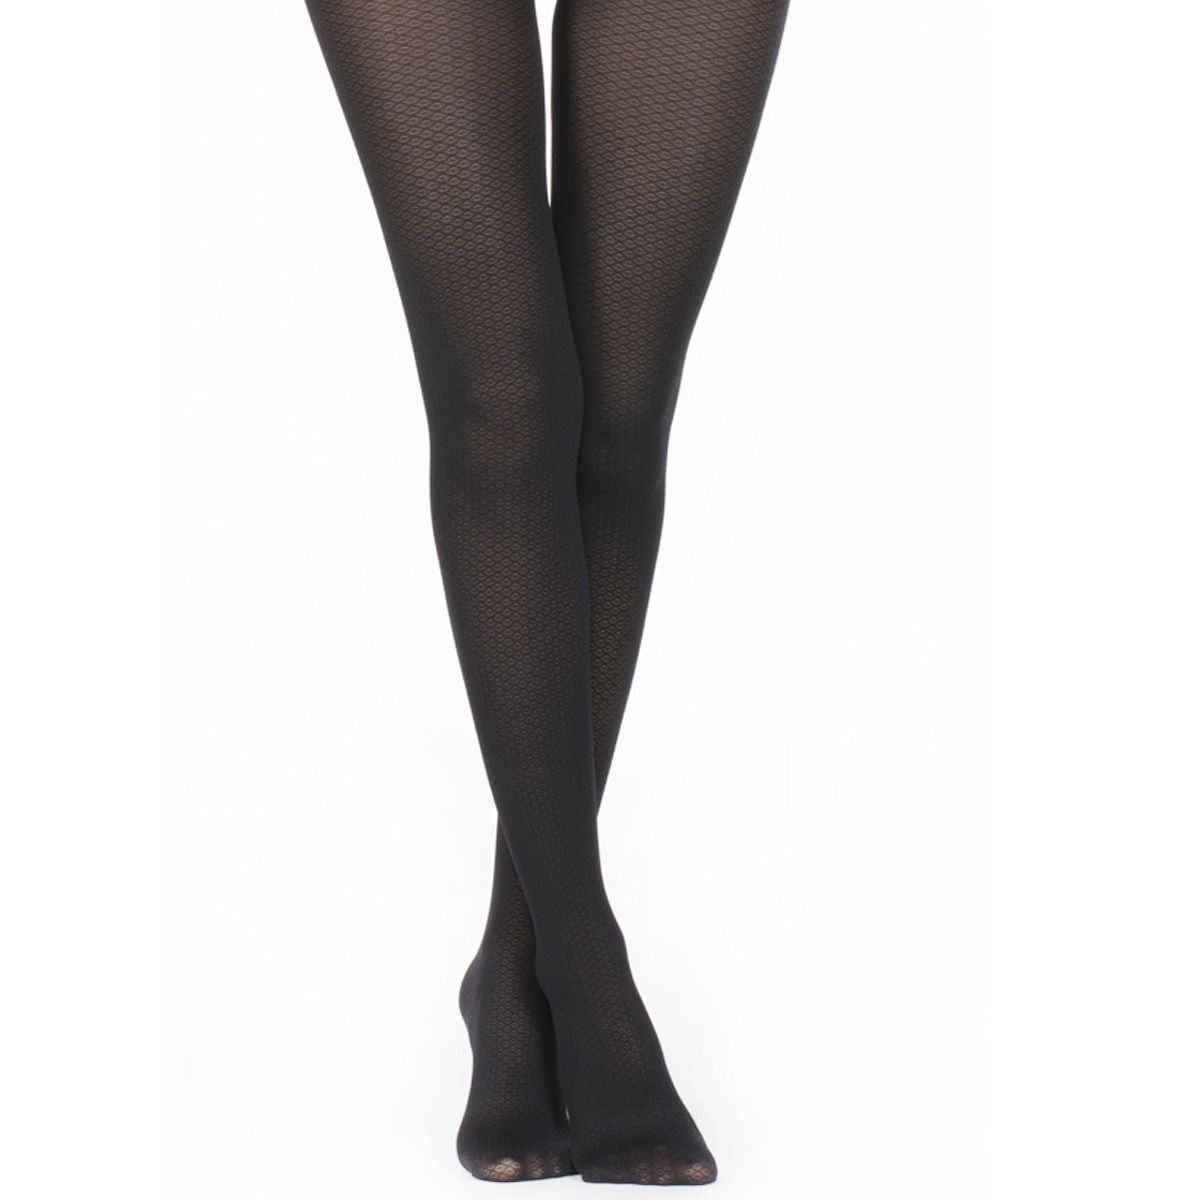 semi texturés semi noirs Collants texturés texturés opaques noirs noirs semi opaques opaques Collants Collants qq4p1